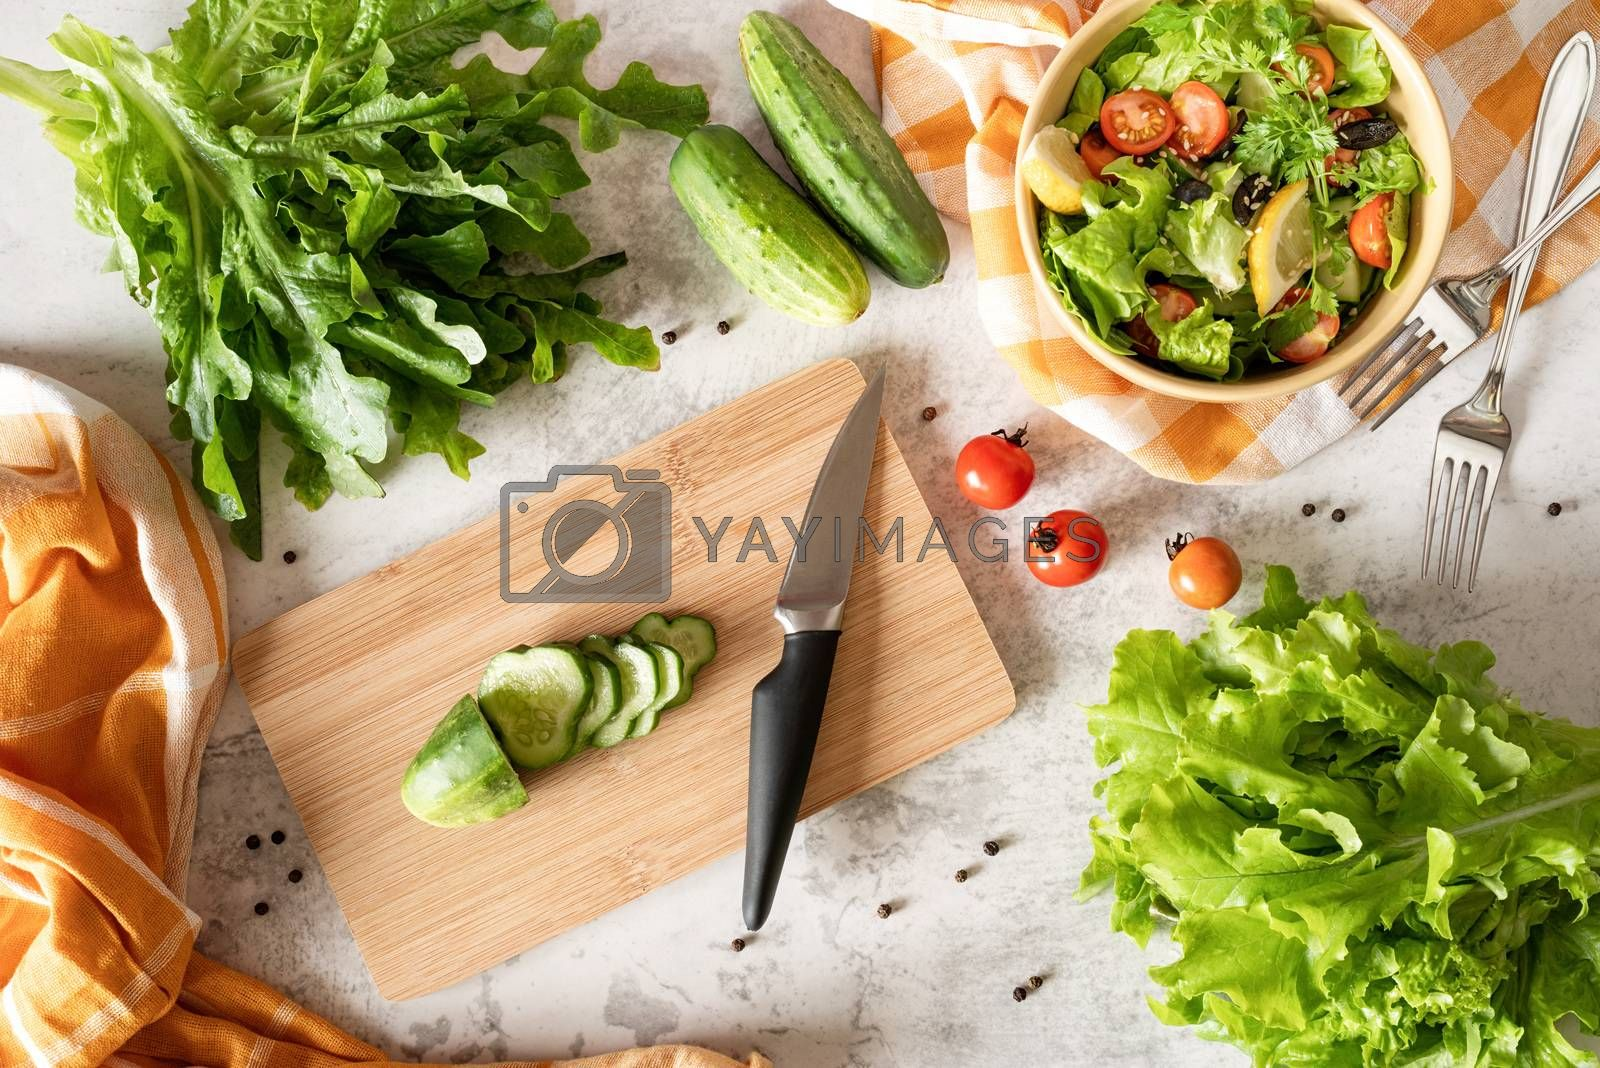 Royalty free image of Top view of making vegetable salad from organic vegetables by Desperada